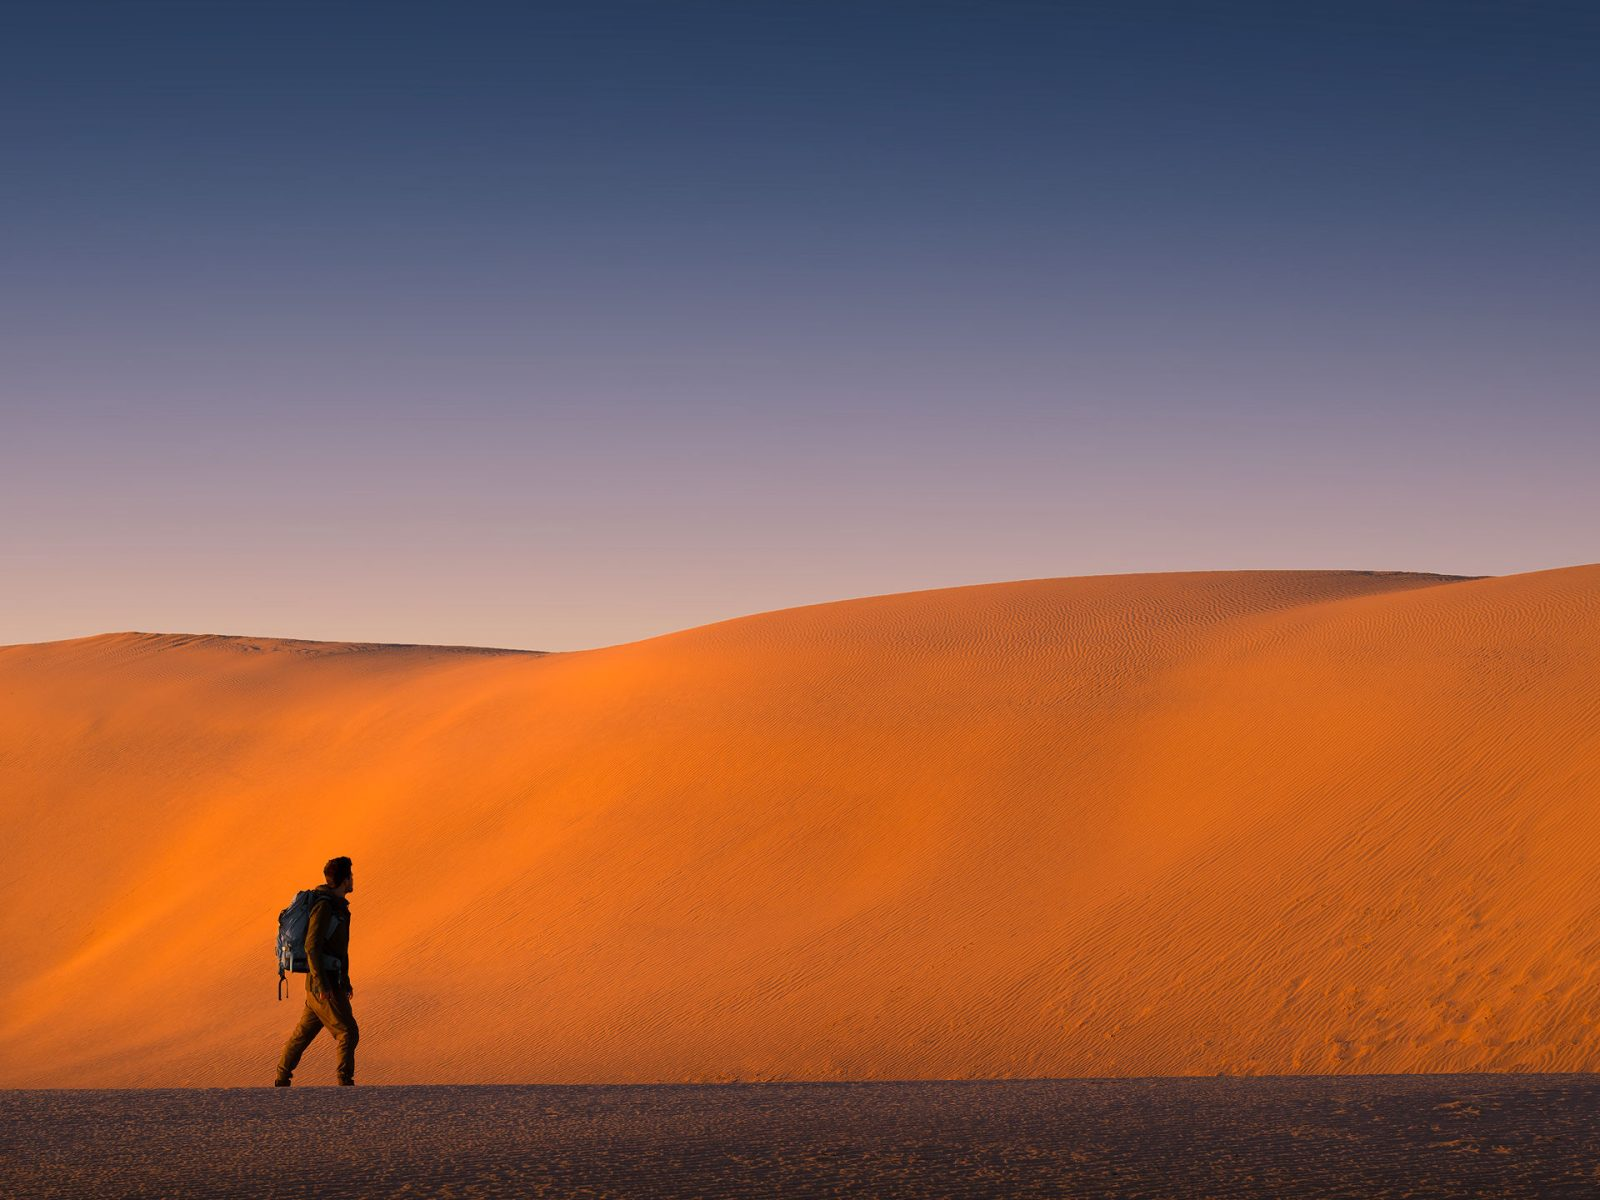 Man in front of large red sand dunes